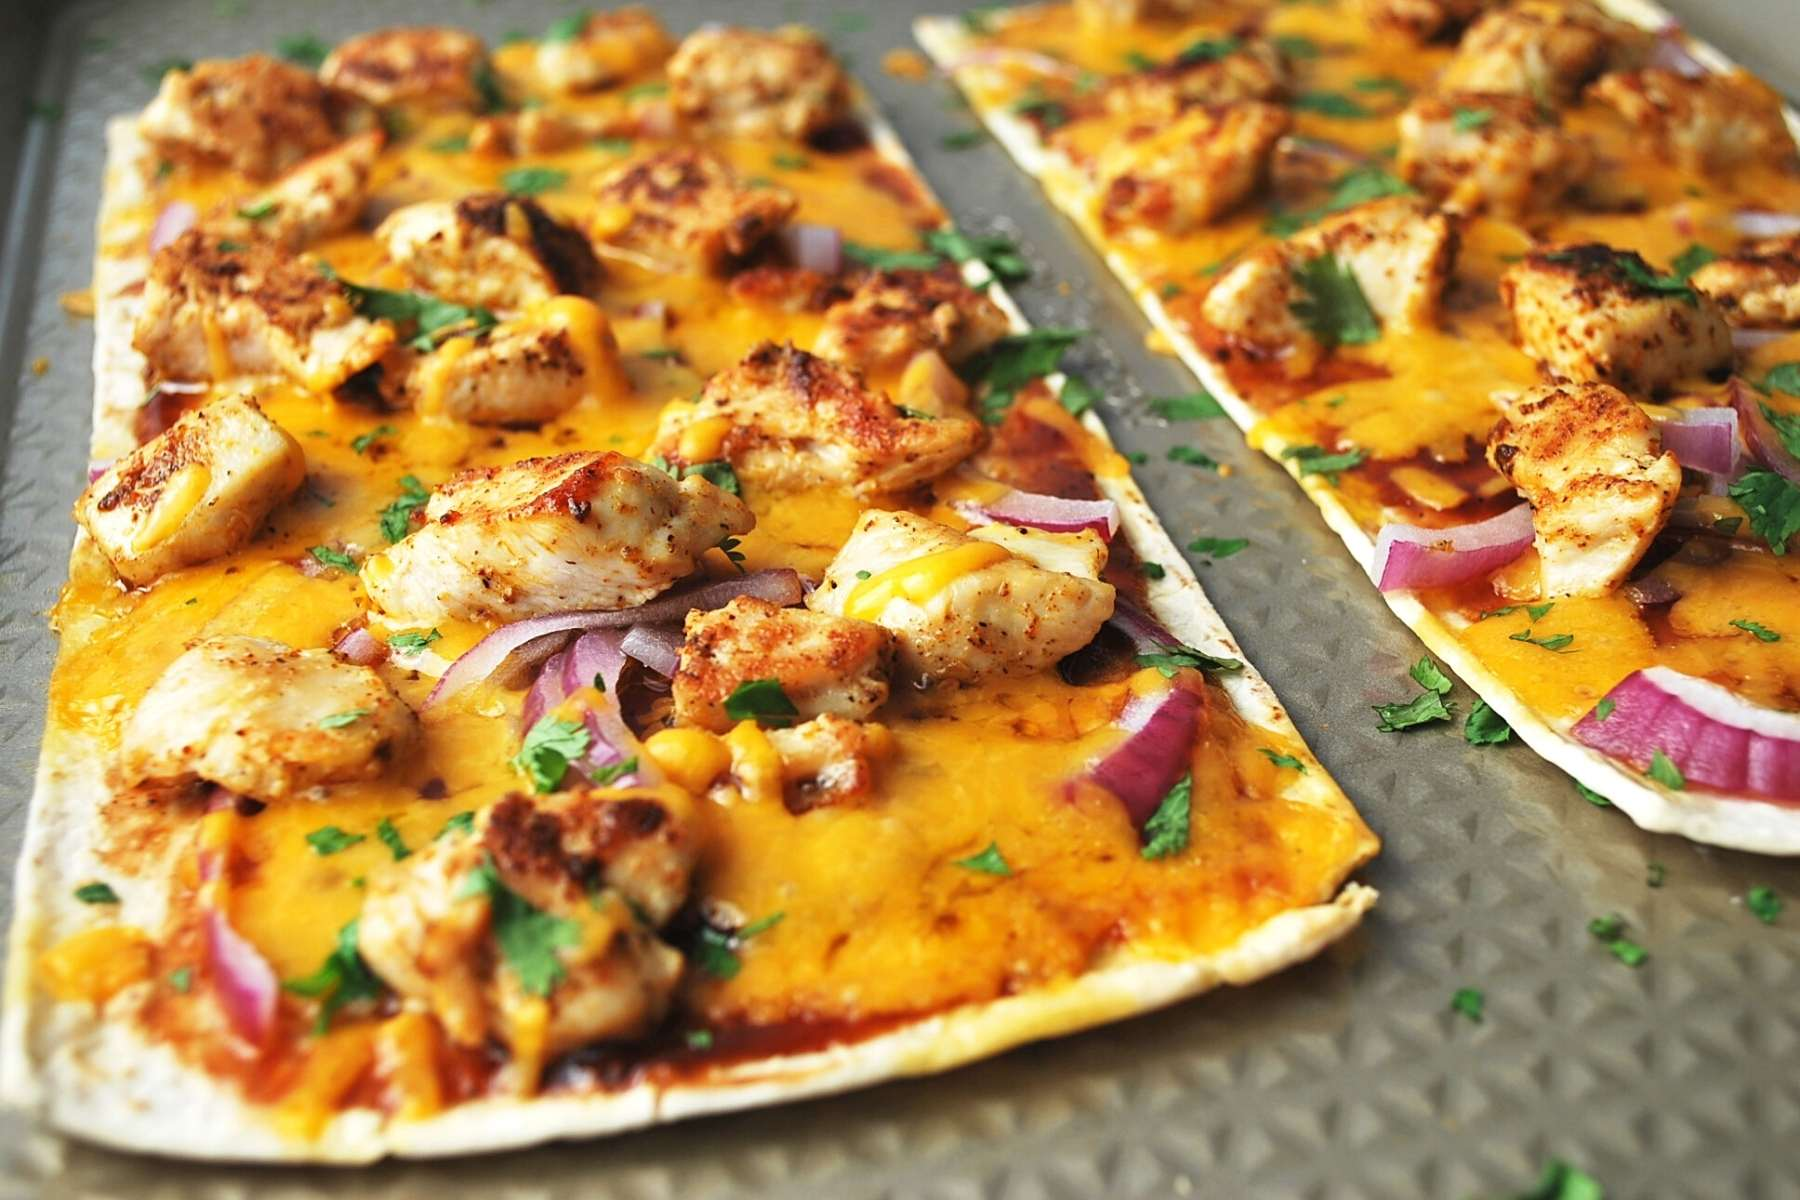 BBQ chicken flatbreads fresh from the oven on a baking sheet